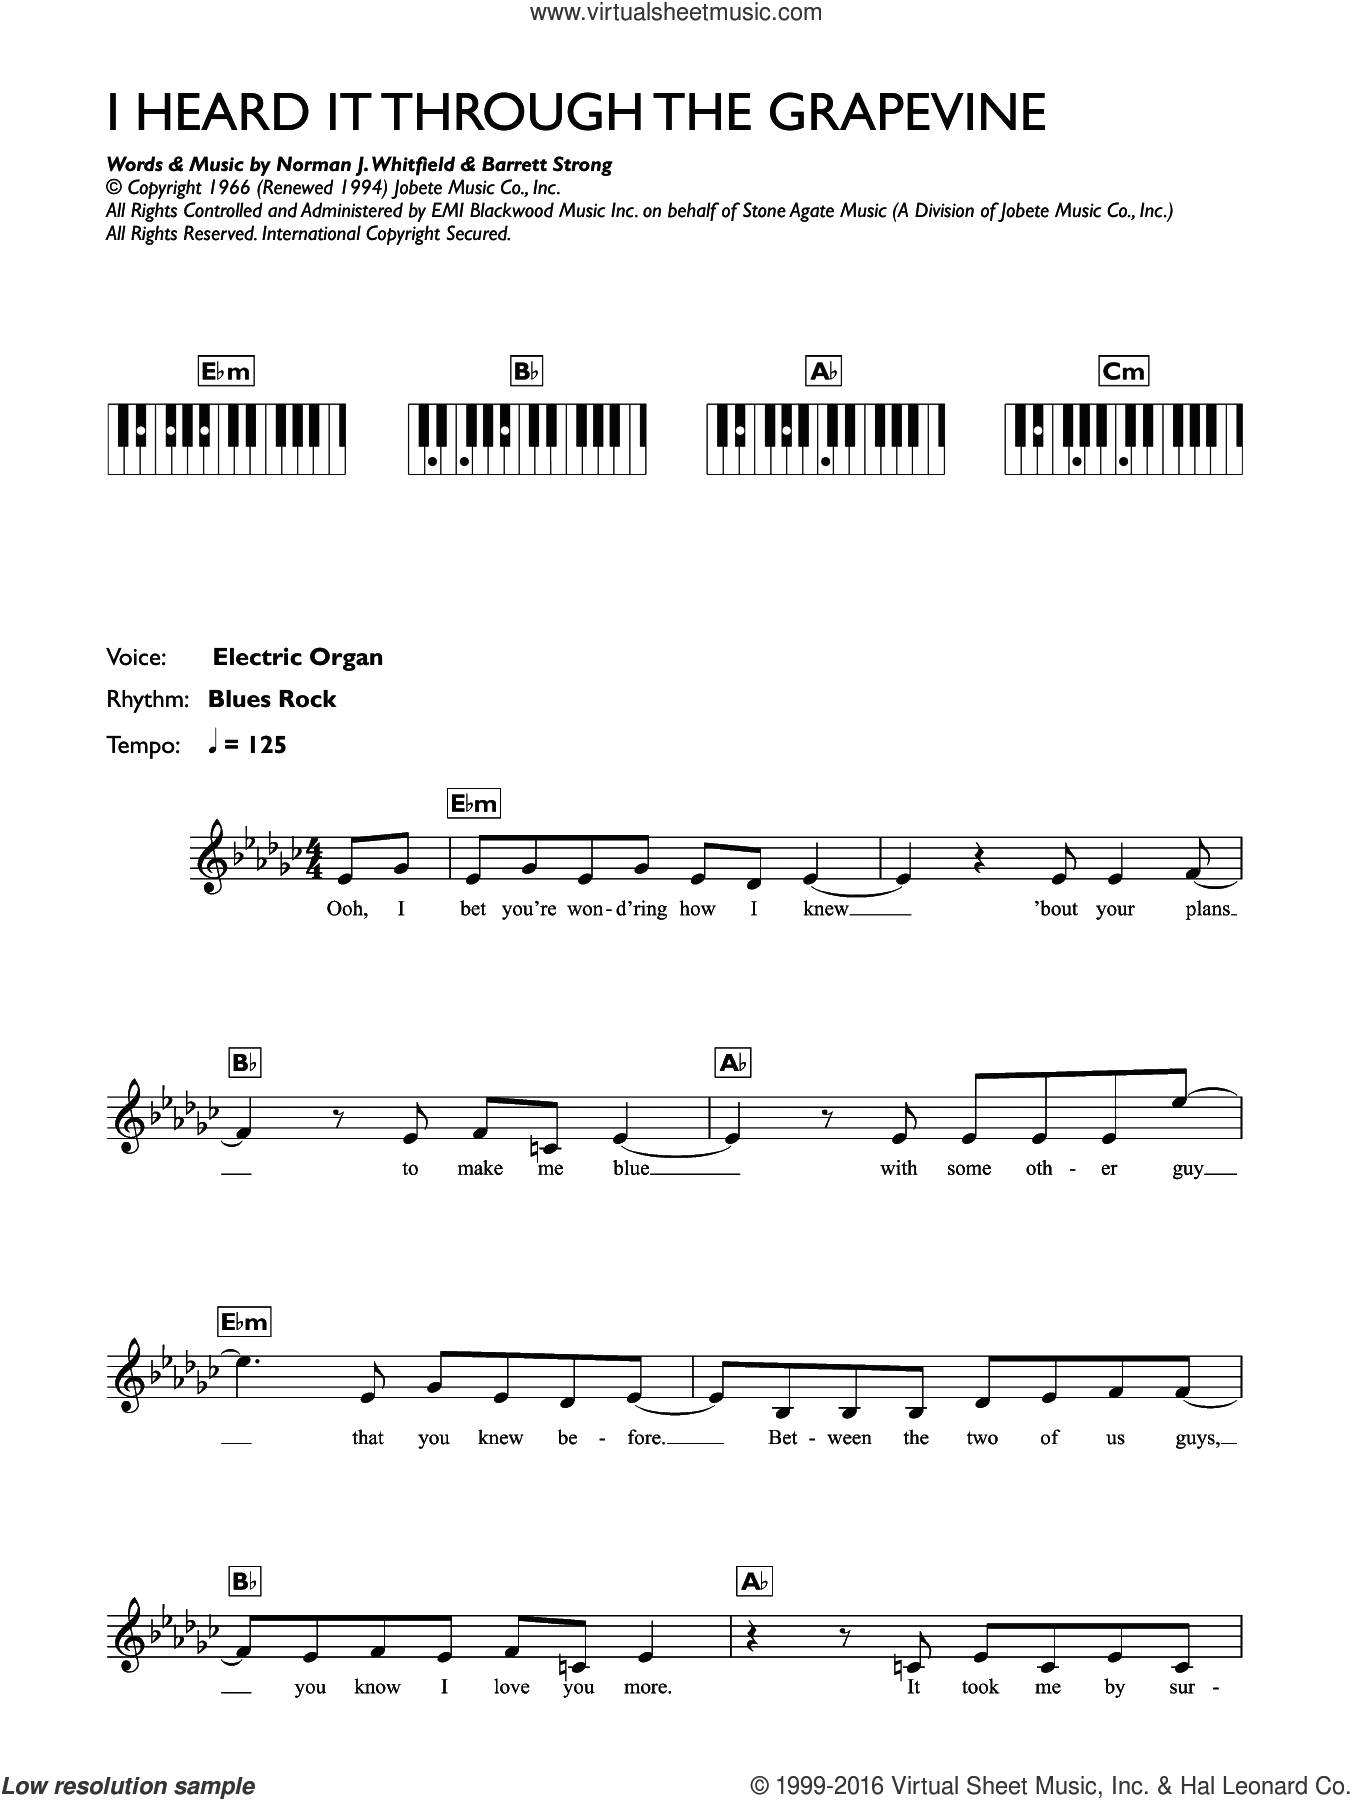 I Heard It Through The Grapevine sheet music for piano solo (chords, lyrics, melody) by Marvin Gaye, Barrett Strong and Norman Whitfield, intermediate piano (chords, lyrics, melody)